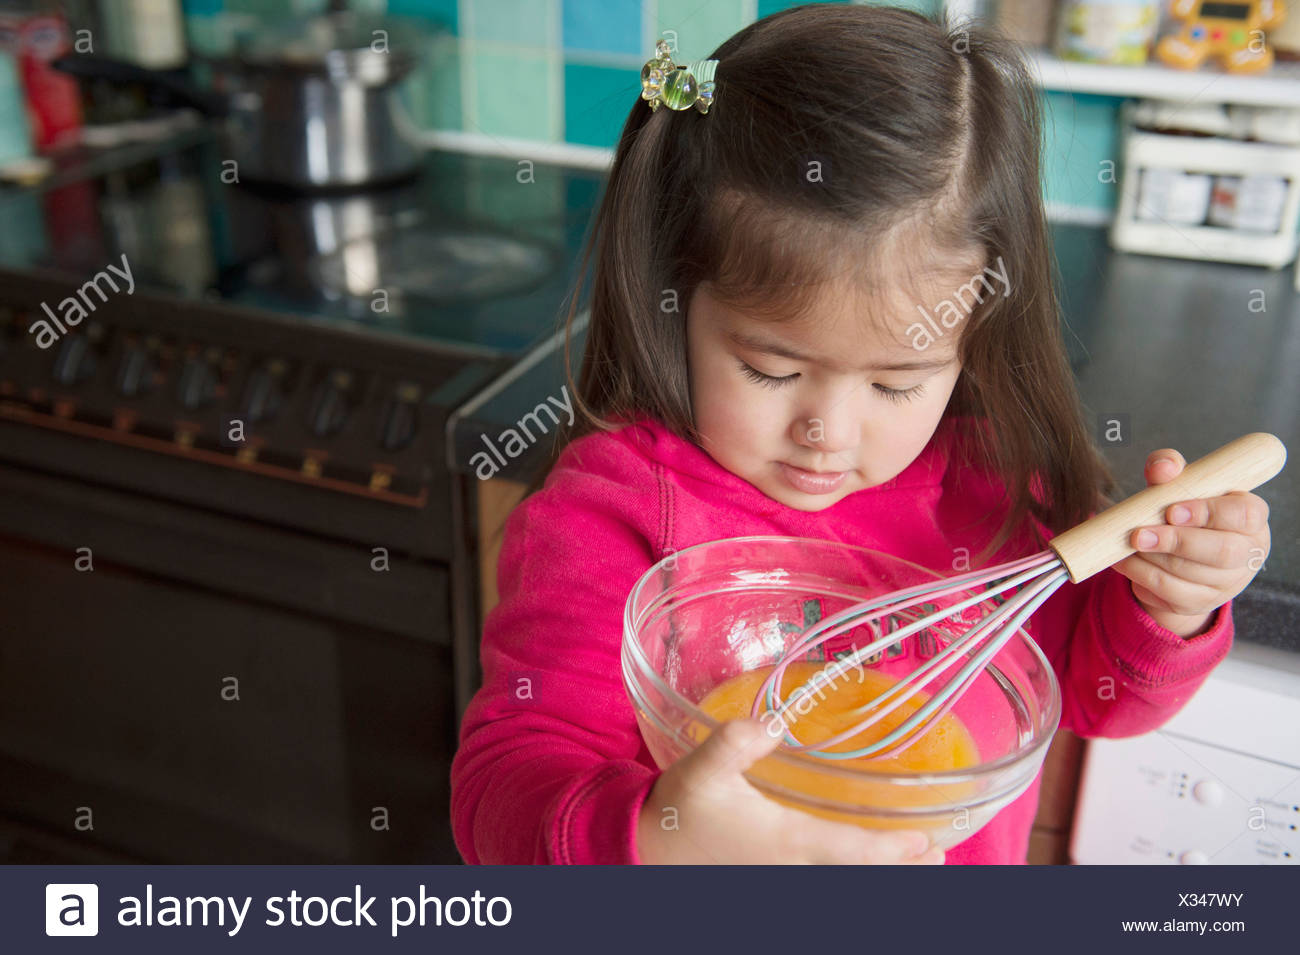 Girl learning to cook - Stock Image